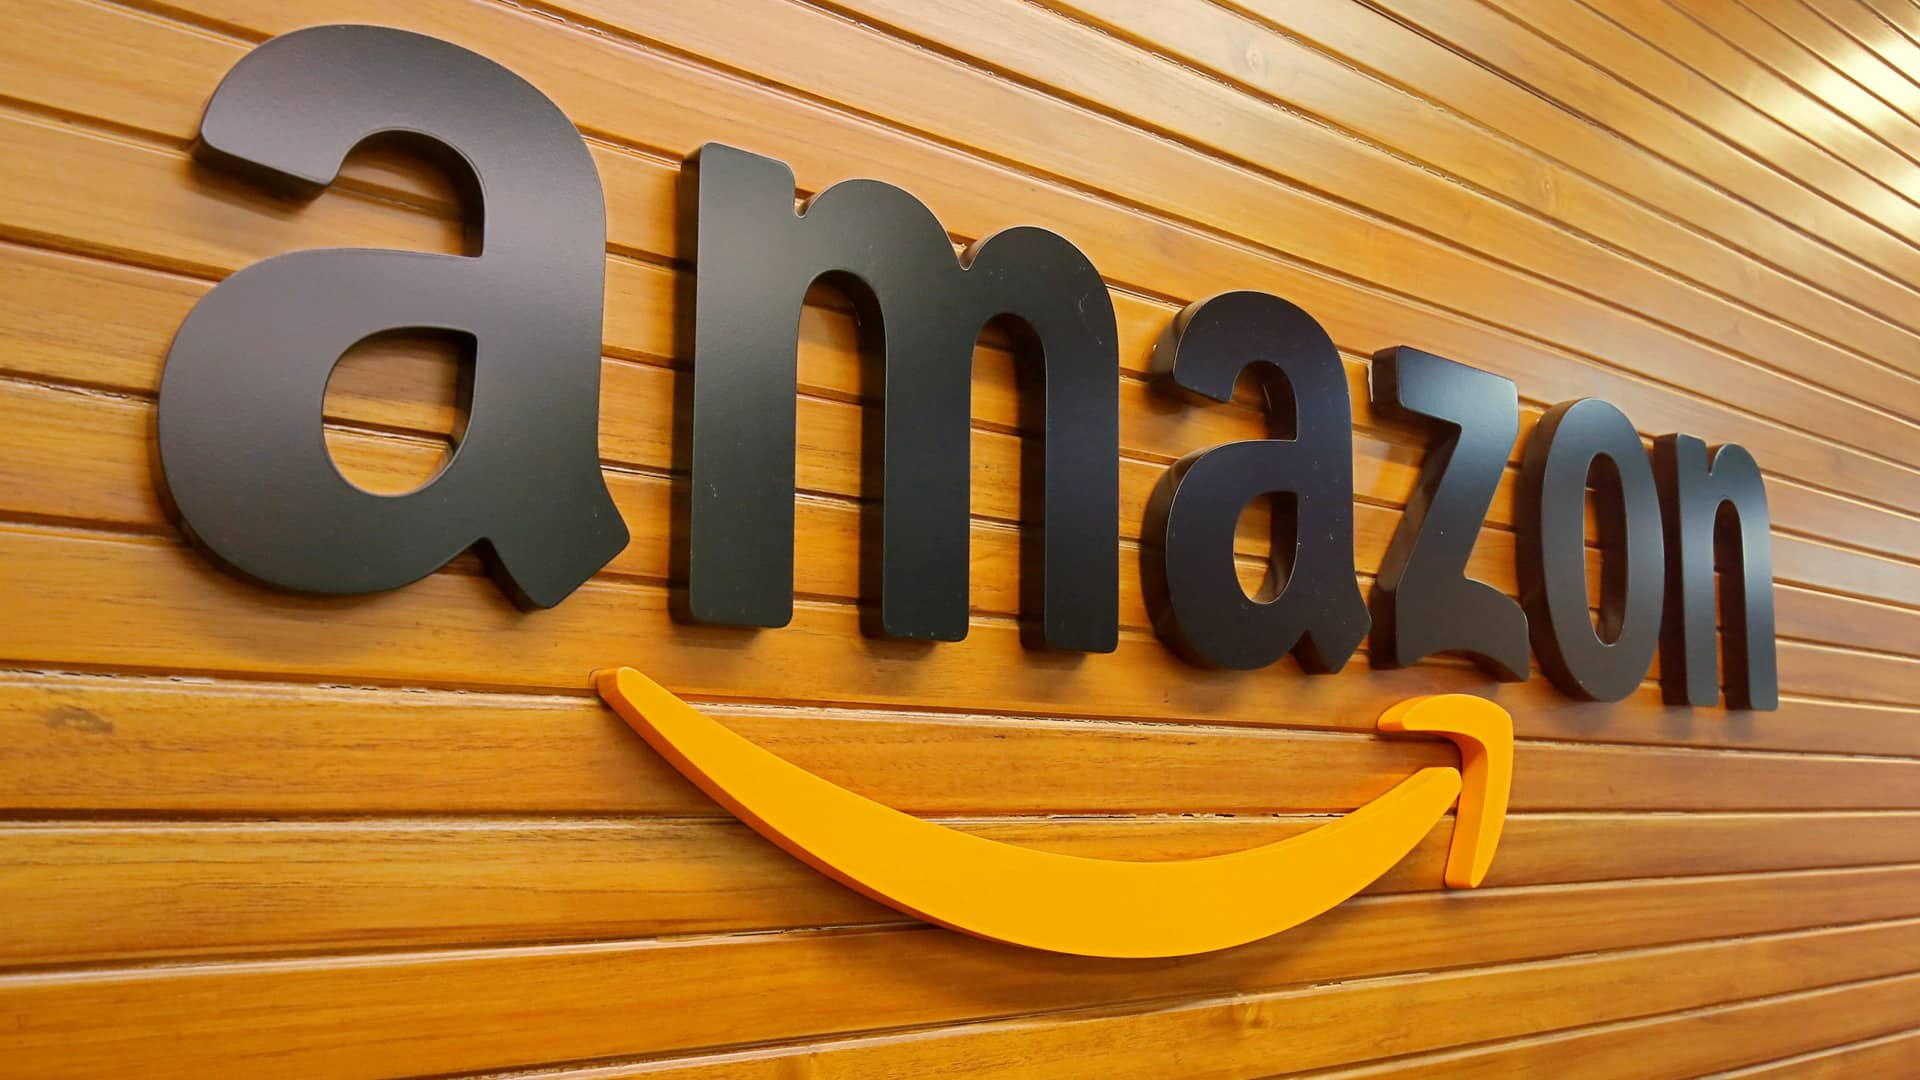 Future says Amazon asked for $40mn as compensation for RIL deal, e-commerce major denies charges